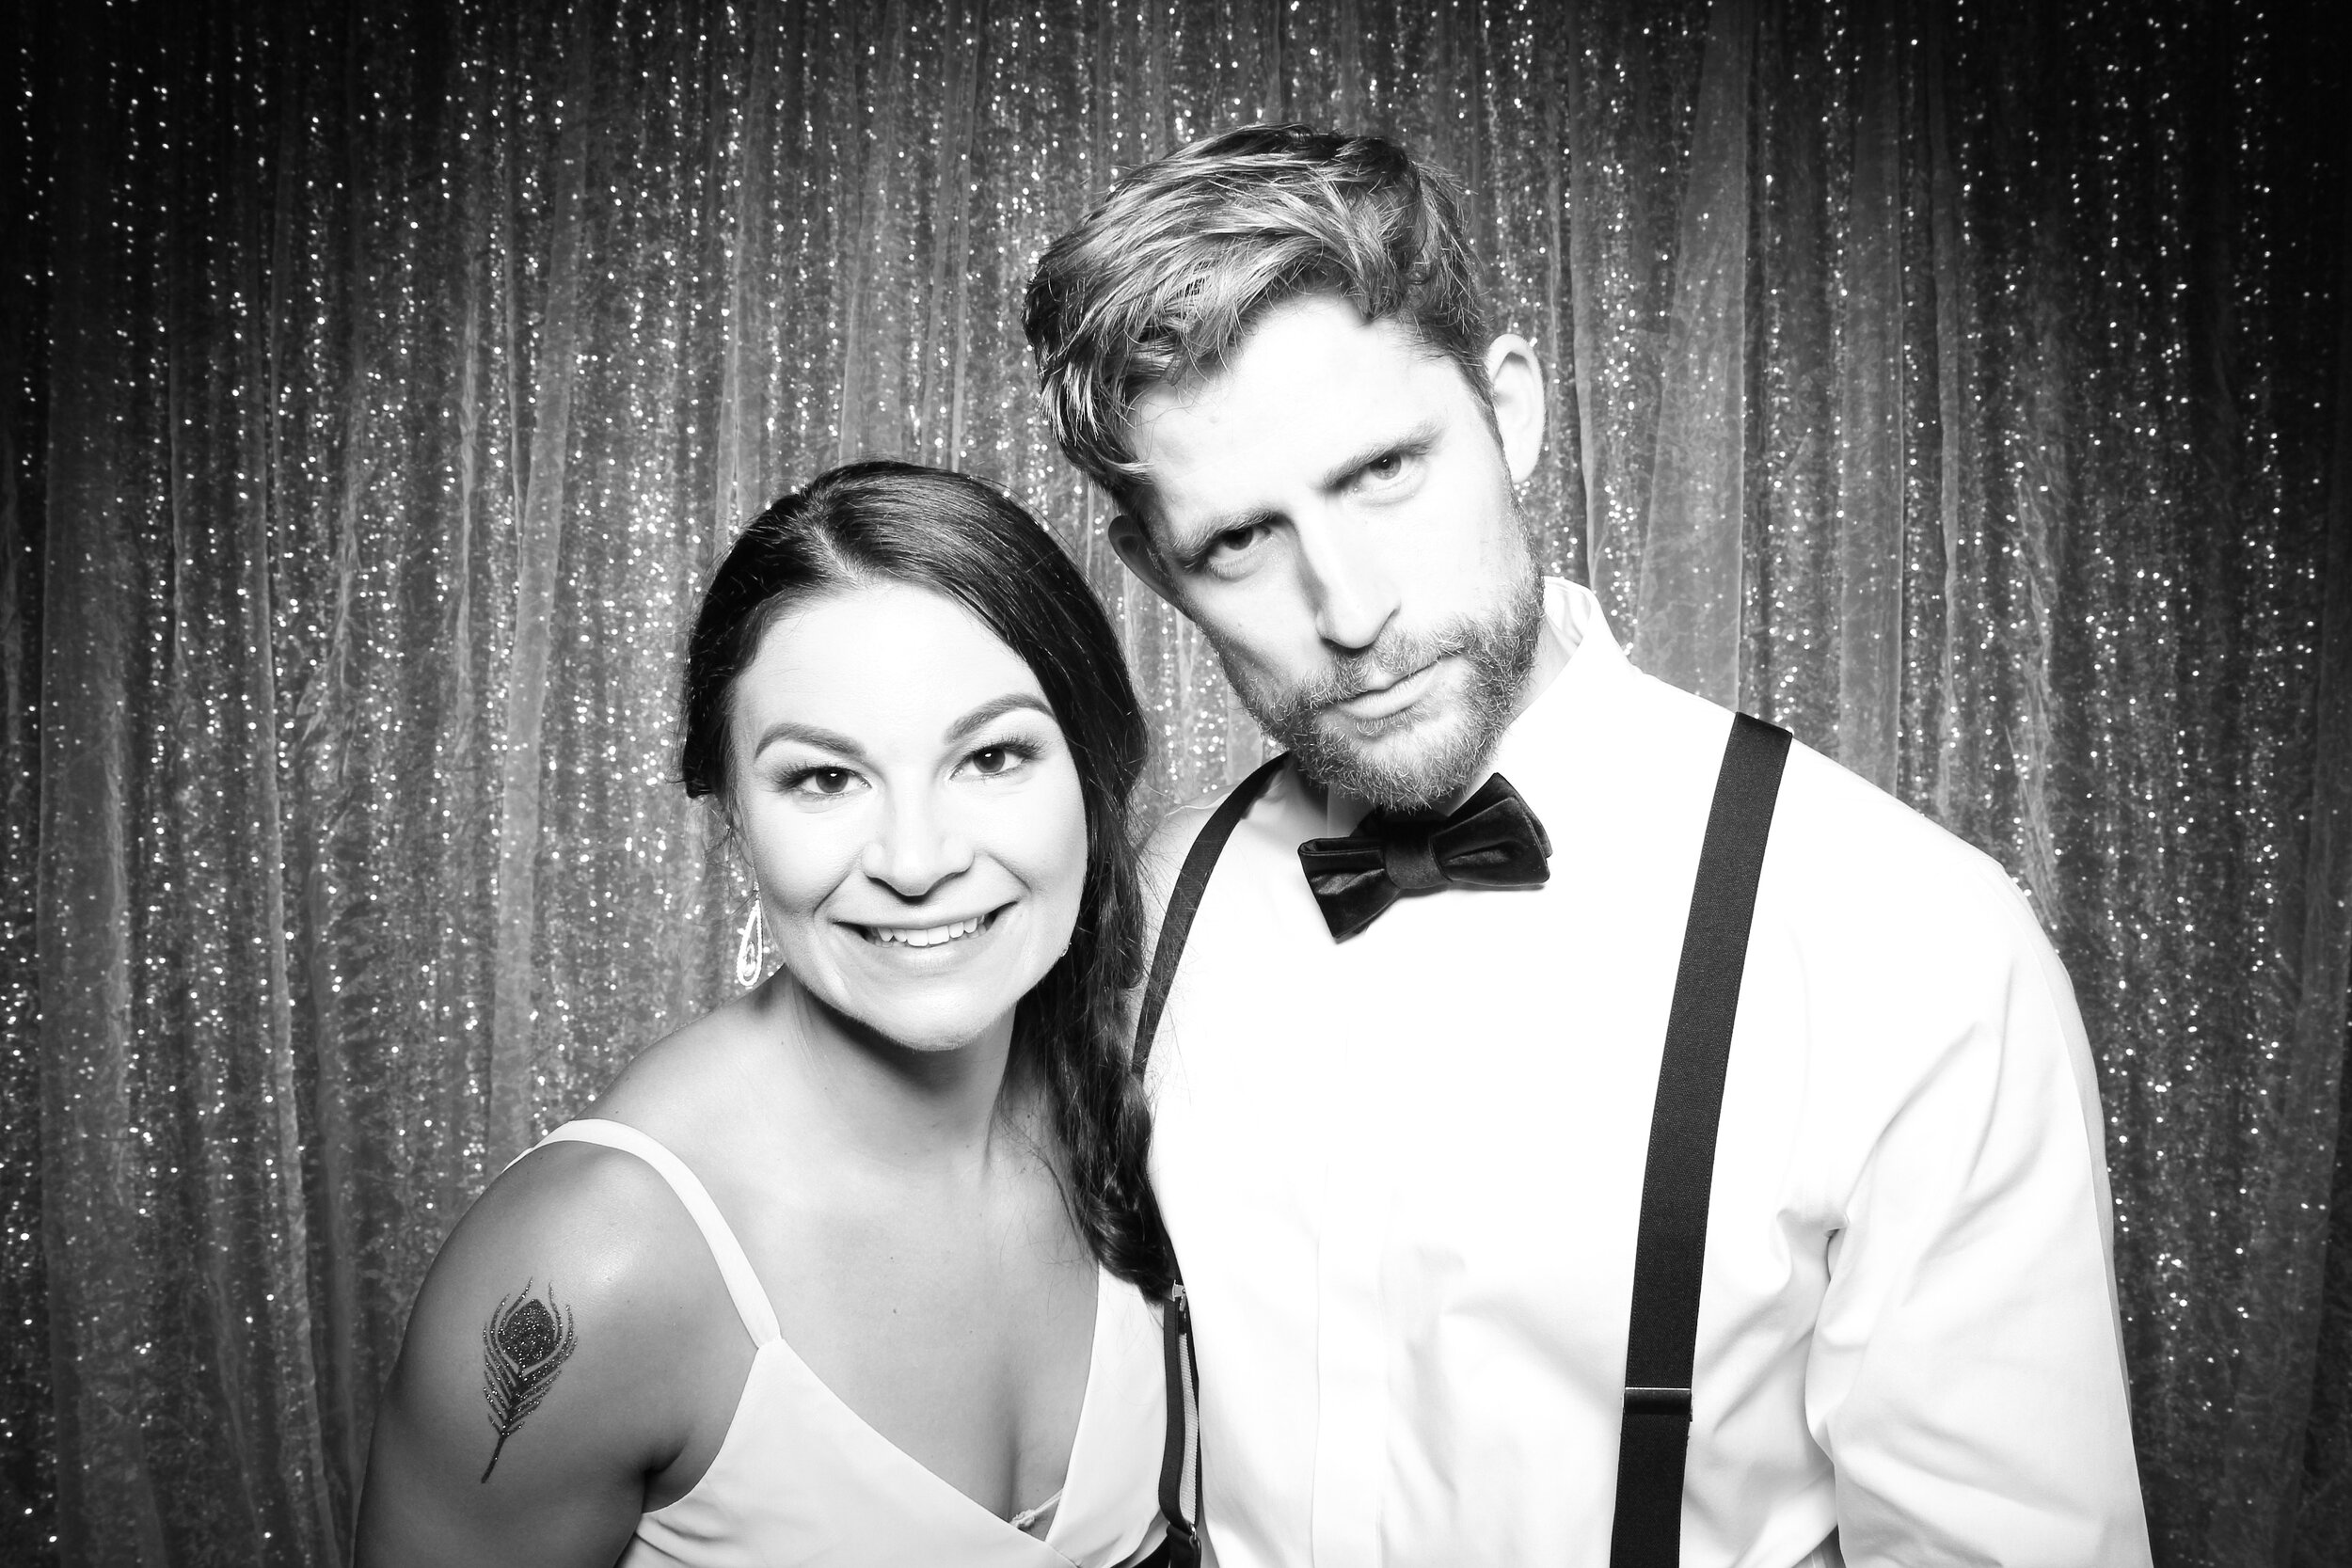 Chicago_Vintage_Wedding_Photobooth_Country_Club_20.jpg